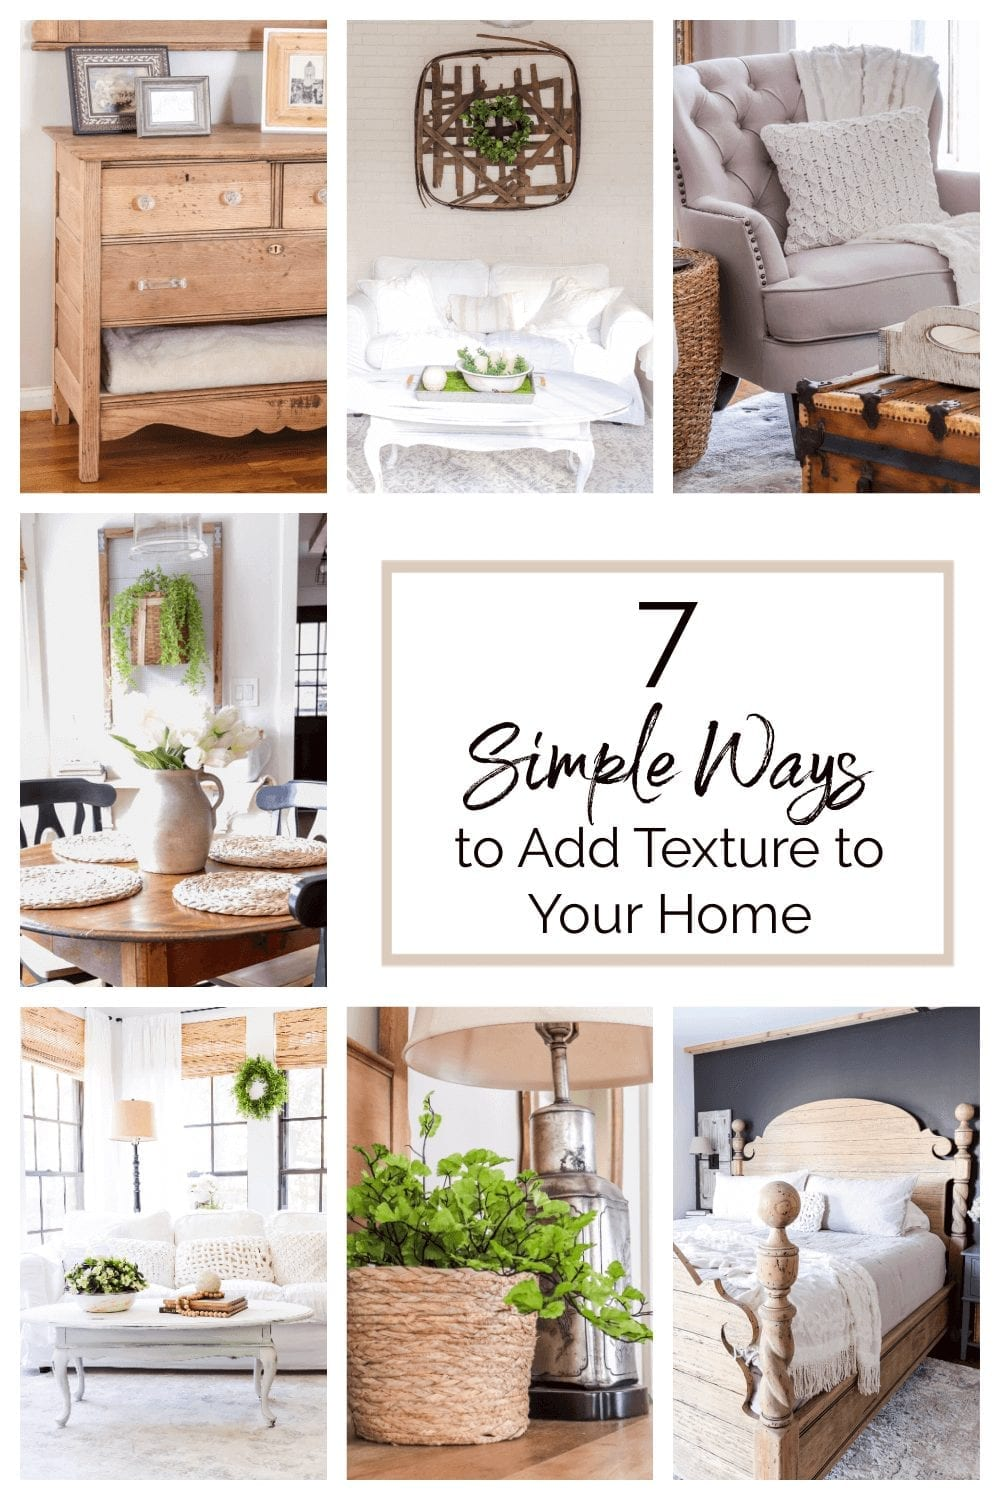 Welcome Home Saturday: 7 Simple Ways to Add Texture To Your Home